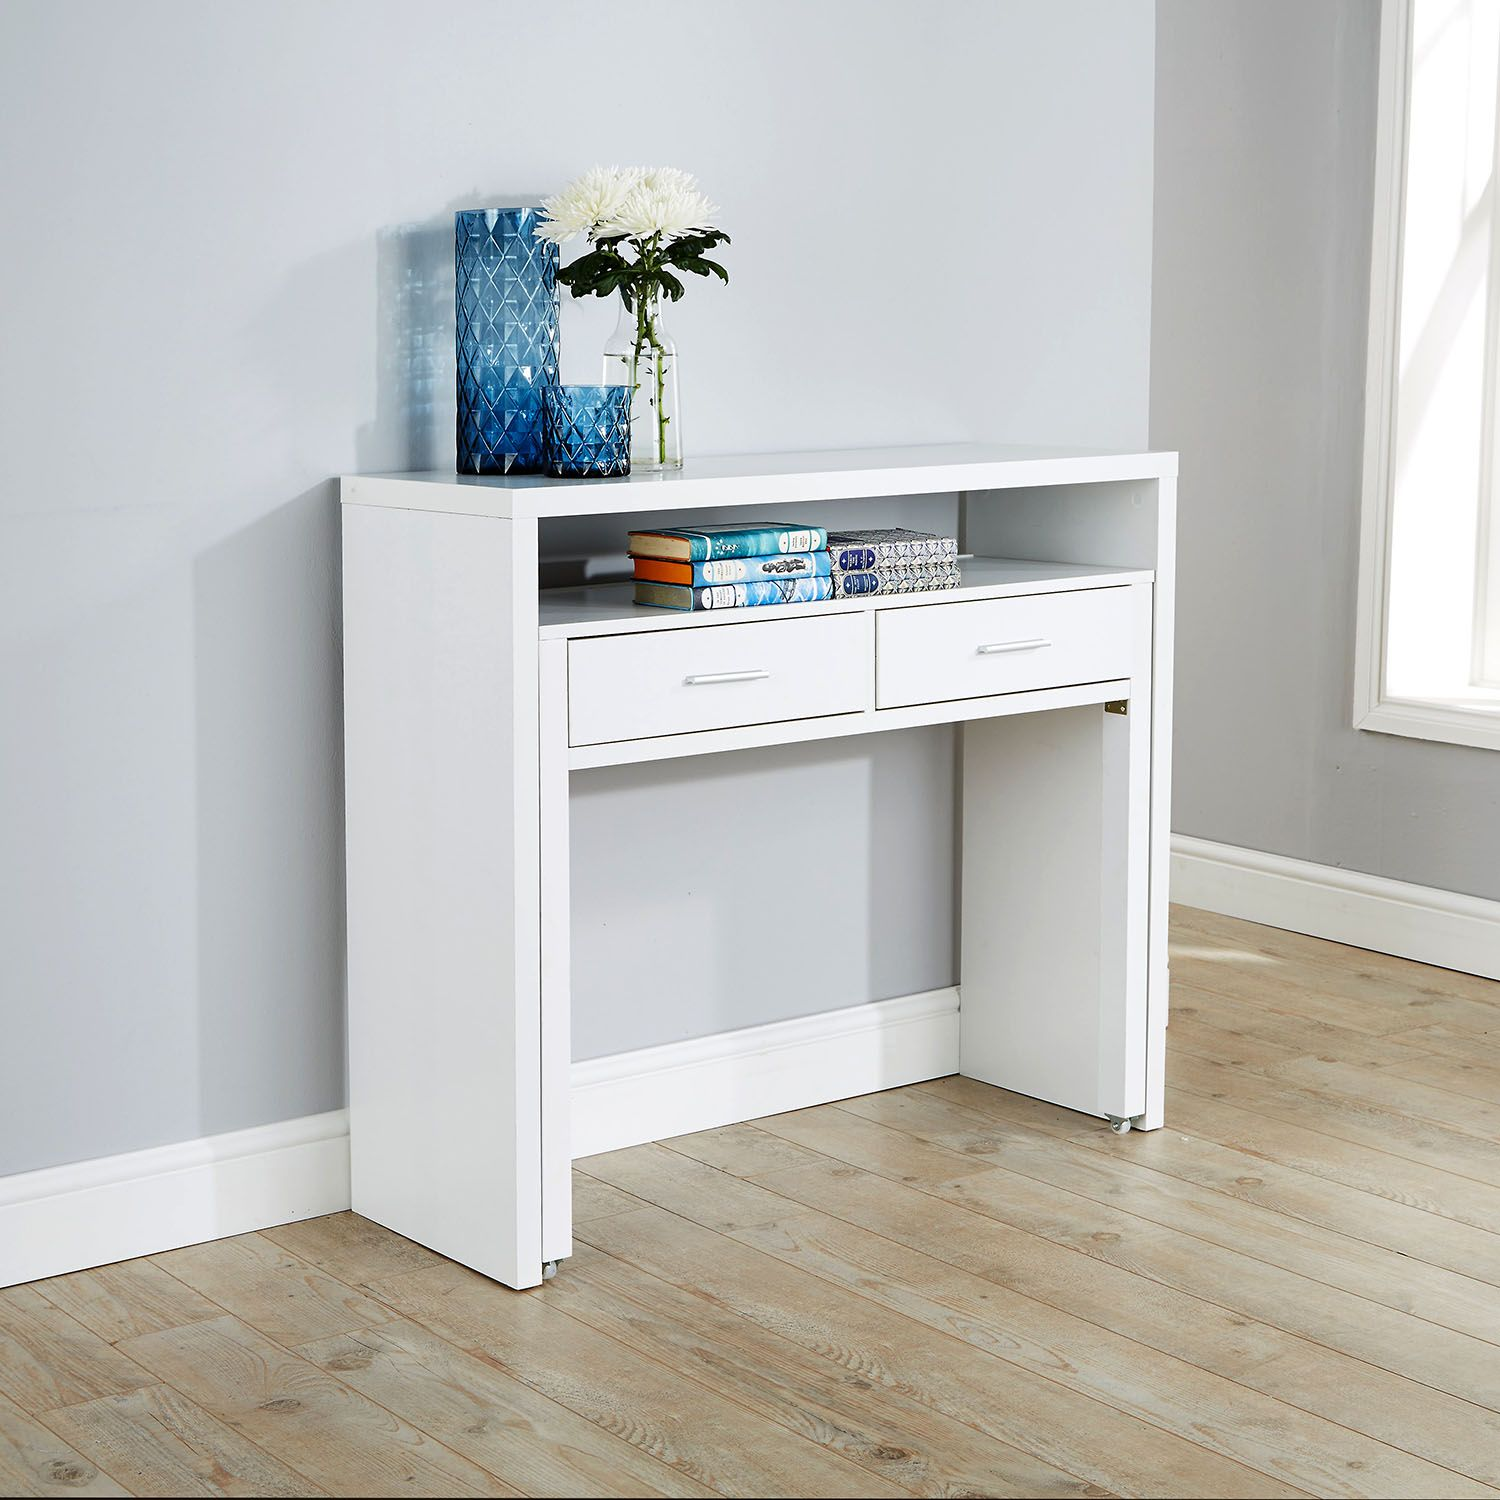 Regis hideaway console desk desk pinterest desks consoles an ideal space saving solution for students with limited space this piece of furniture extends from a console table to a desk in no time geotapseo Images